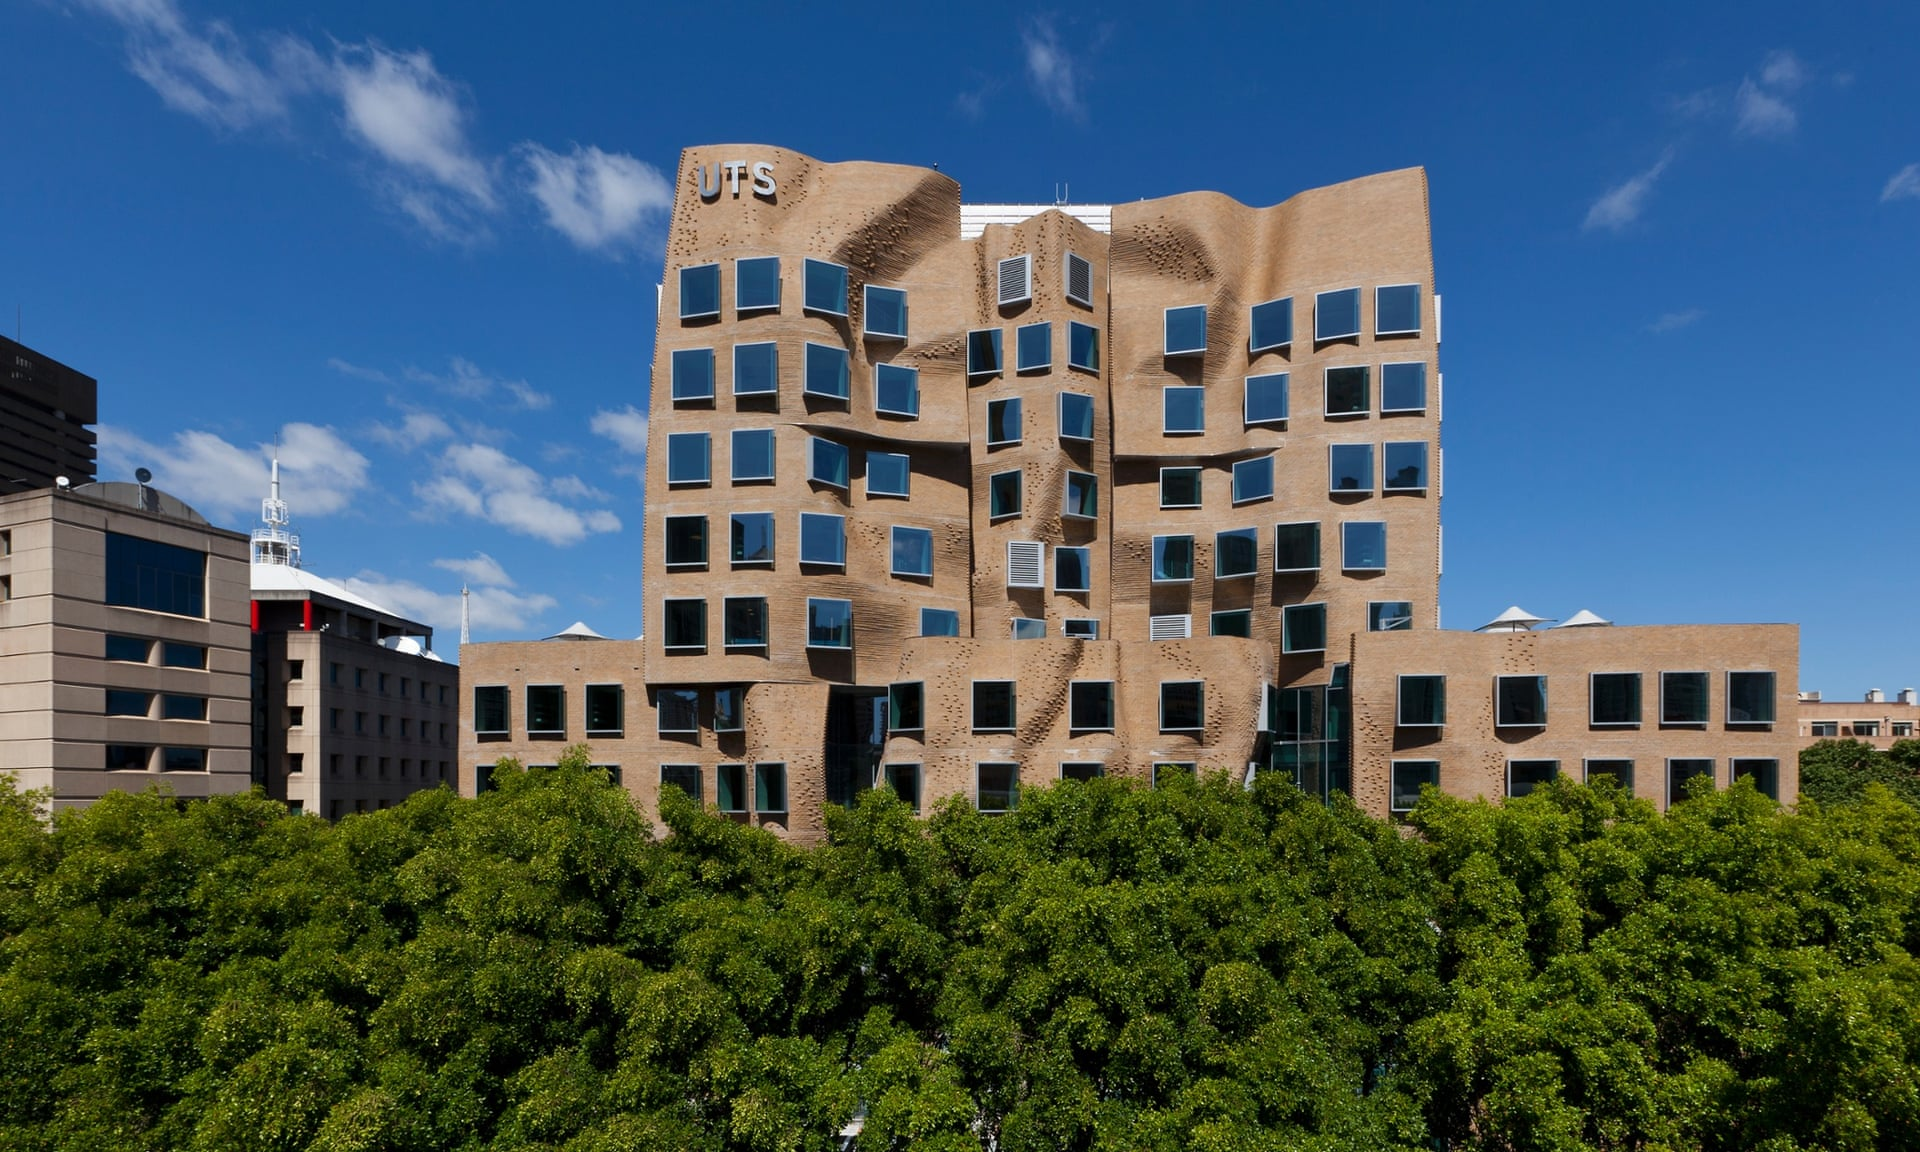 Paper bag building - Architect Frank Gehry S Crumpled Paper Bag Building